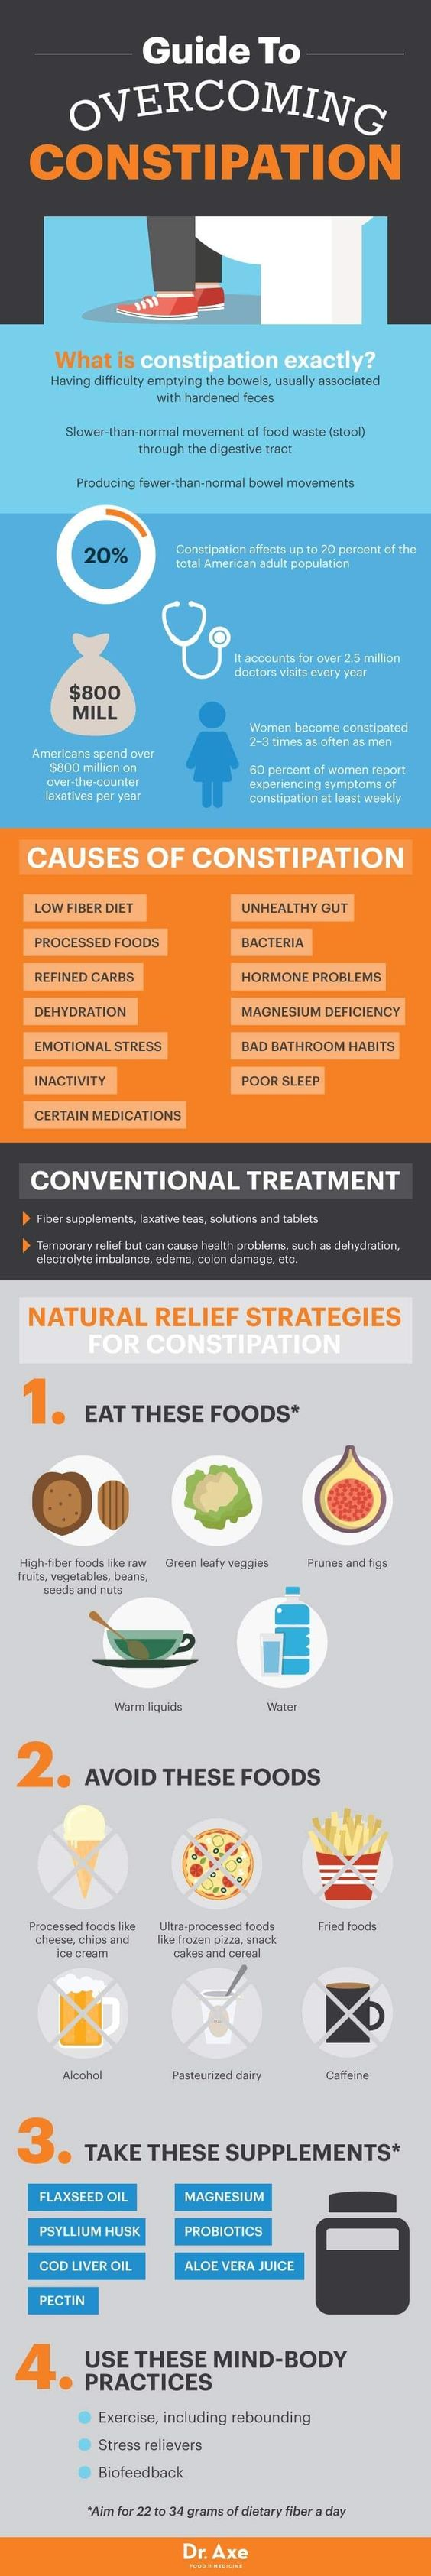 Natural Constipation Relief Remedies: Foods, Supplements - Dr. Axe